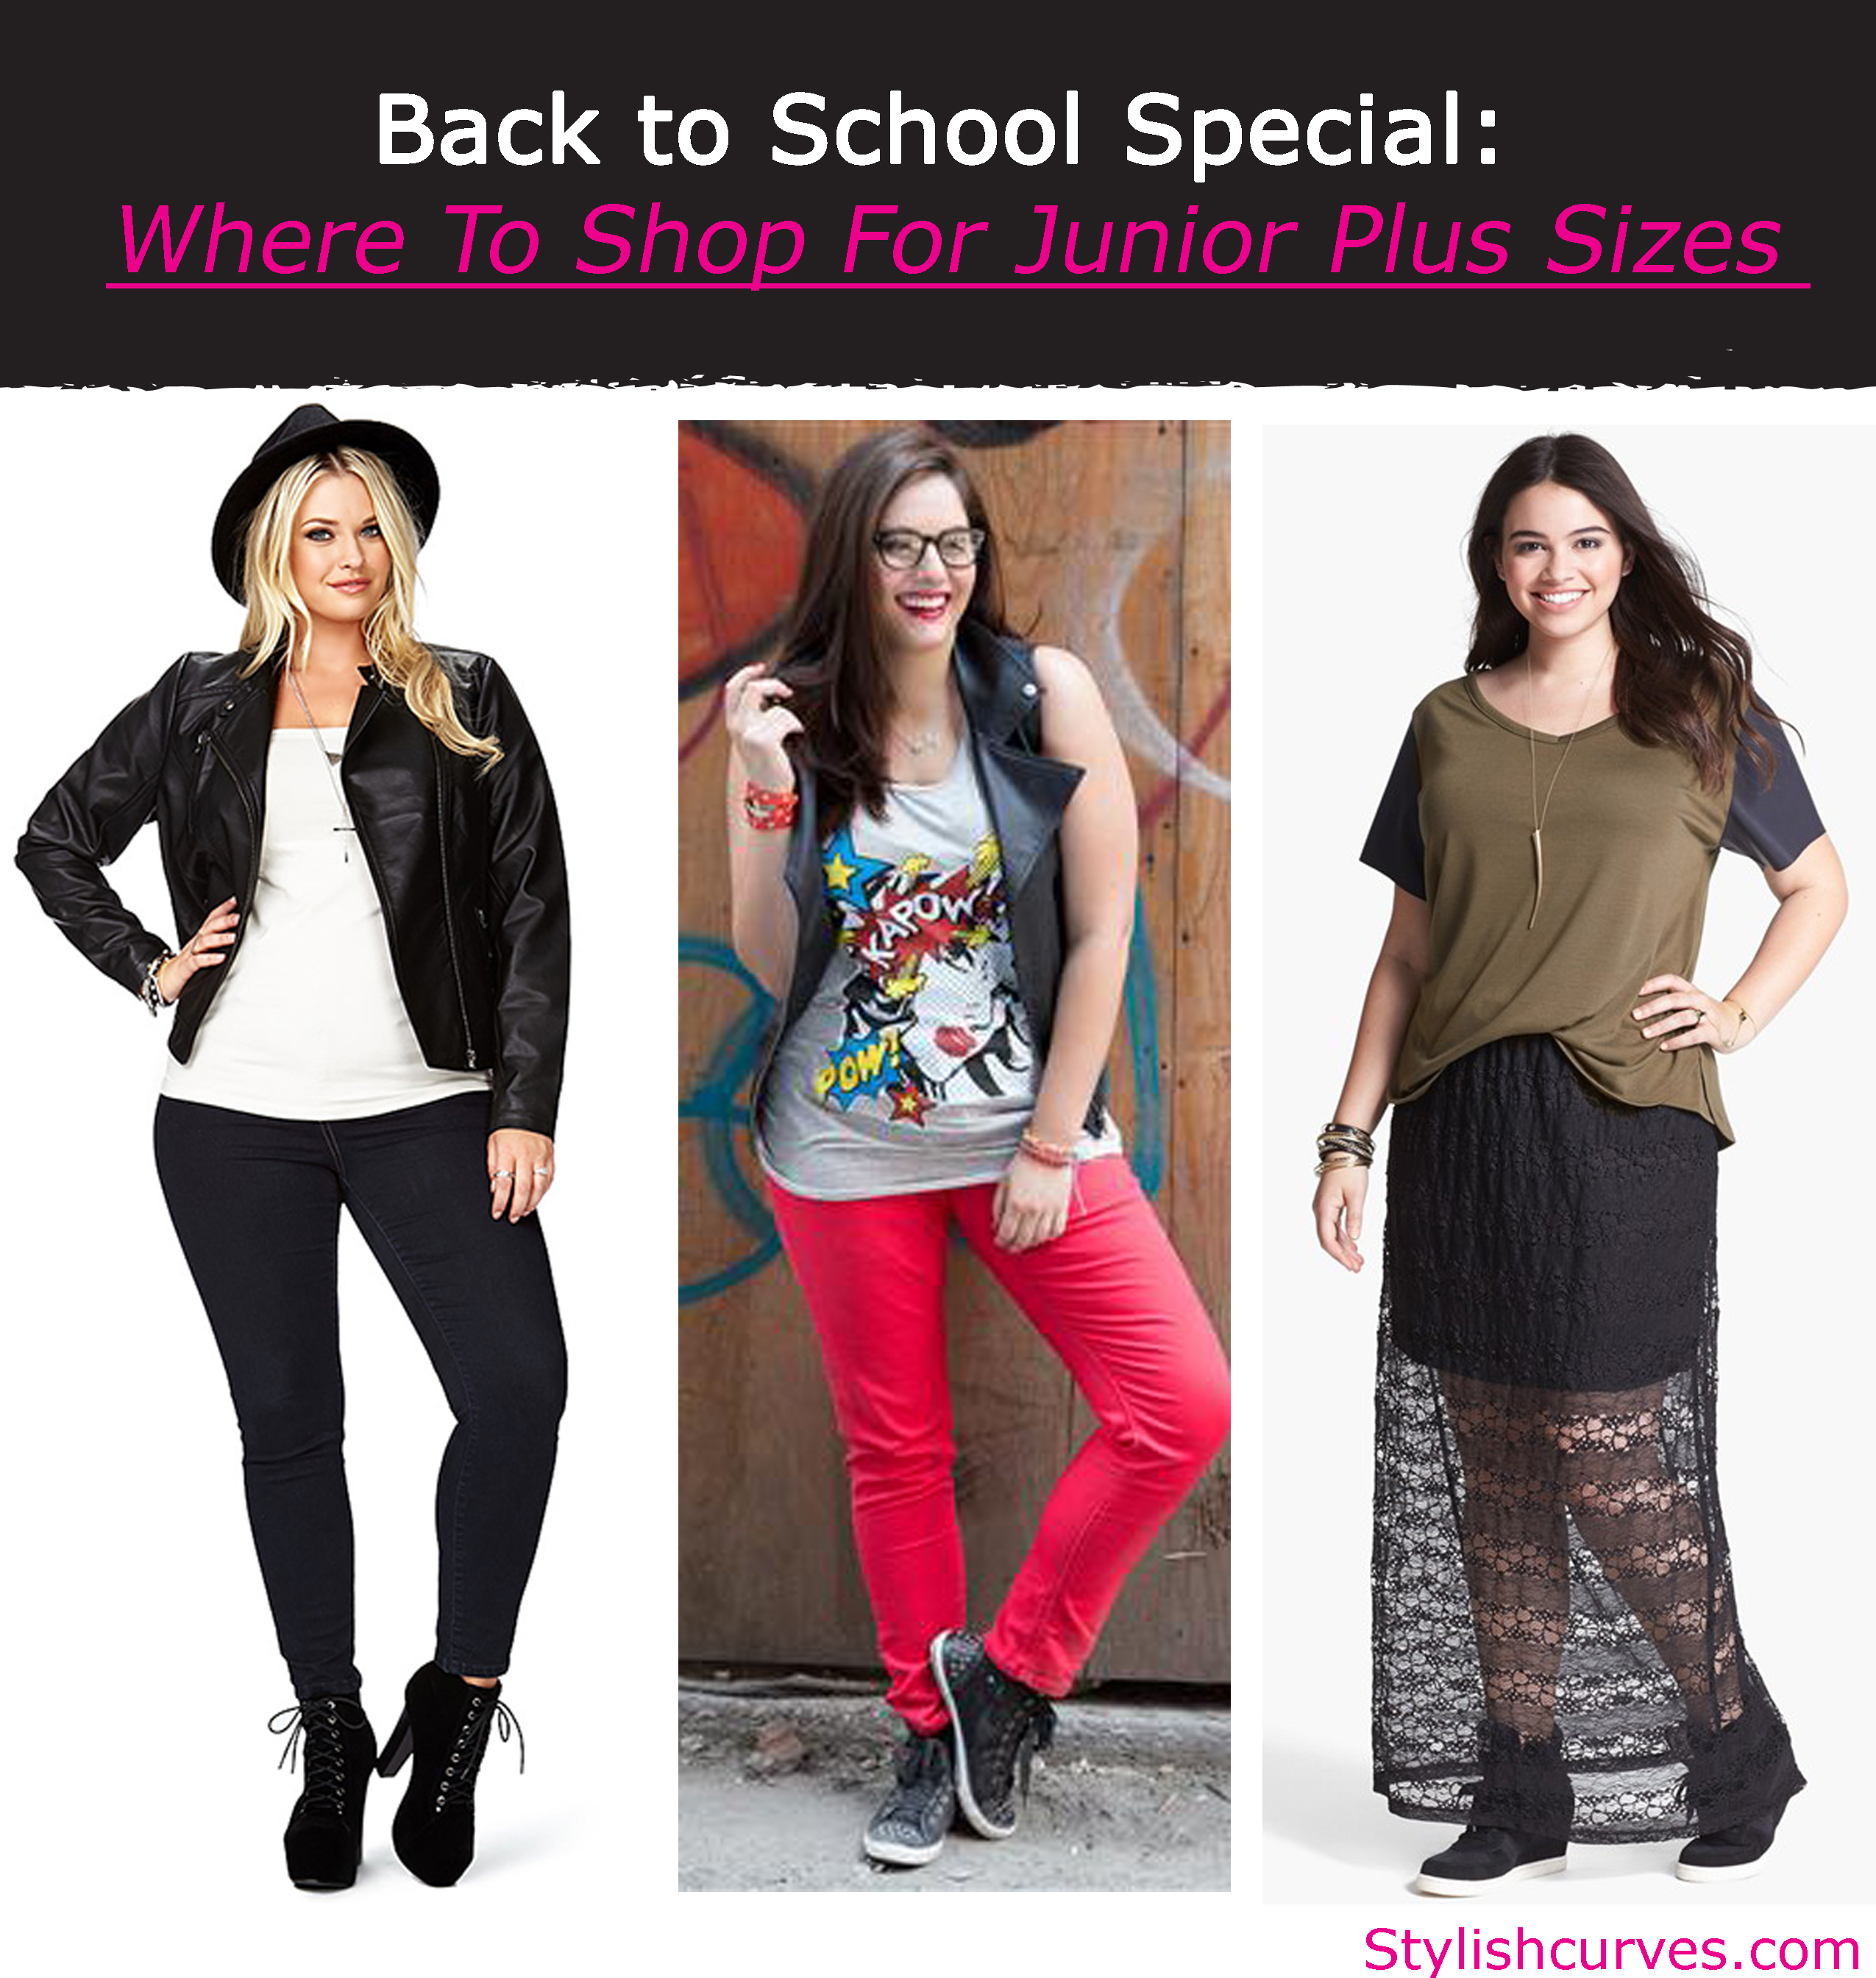 d5f0c7214a5 BACK TO SCHOOL SPECIAL  WHERE TO SHOP FOR JUNIOR PLUS SIZE CLOTHES ...